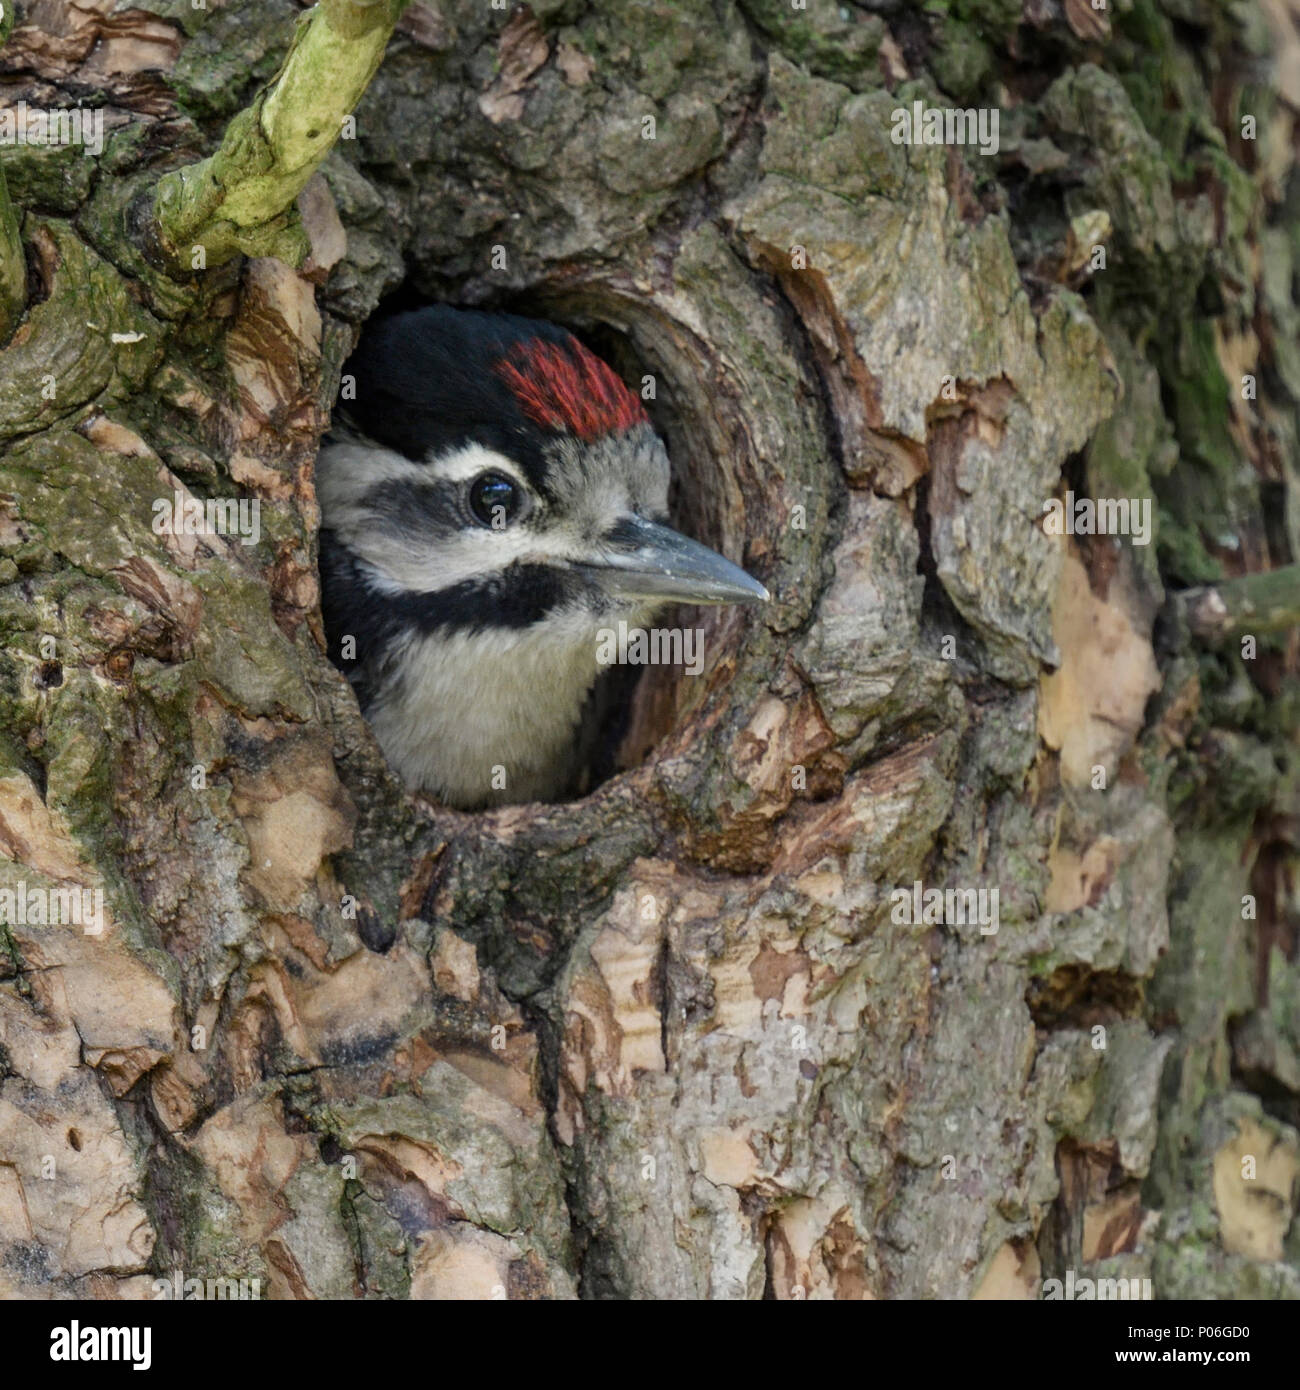 Greater / Great Spotted Woodpecker / Buntspecht ( Dendrocopos major ), juvenile, chick, looking out of nest hole, Europe. - Stock Image